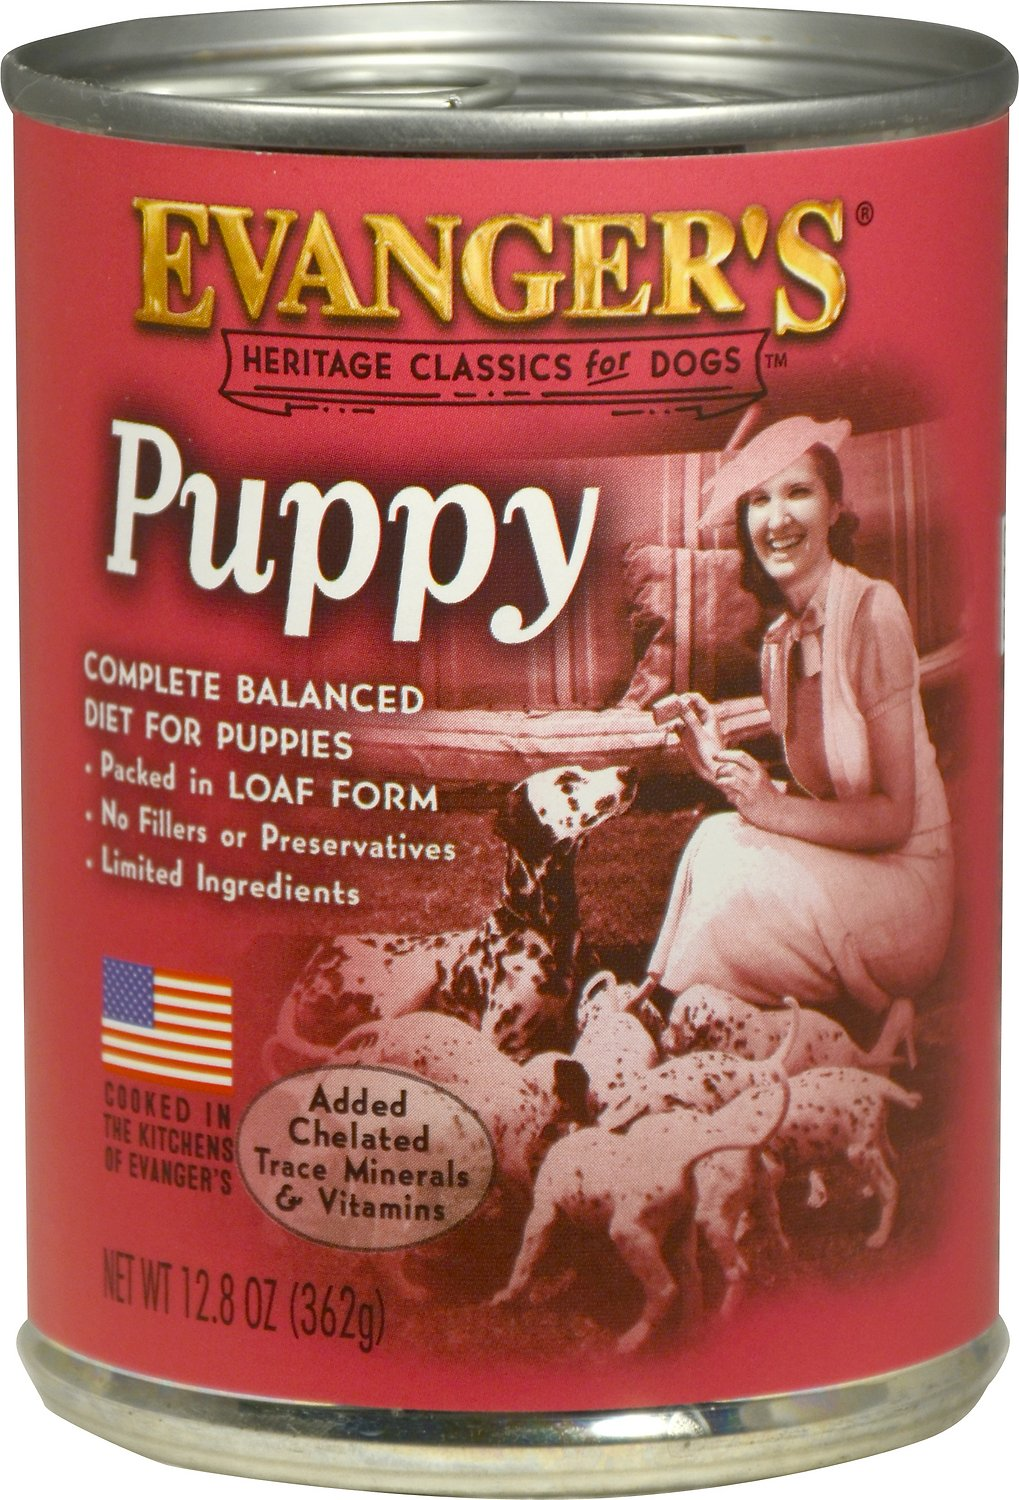 Evanger's Classic Recipes Puppy Canned Dog Food Image